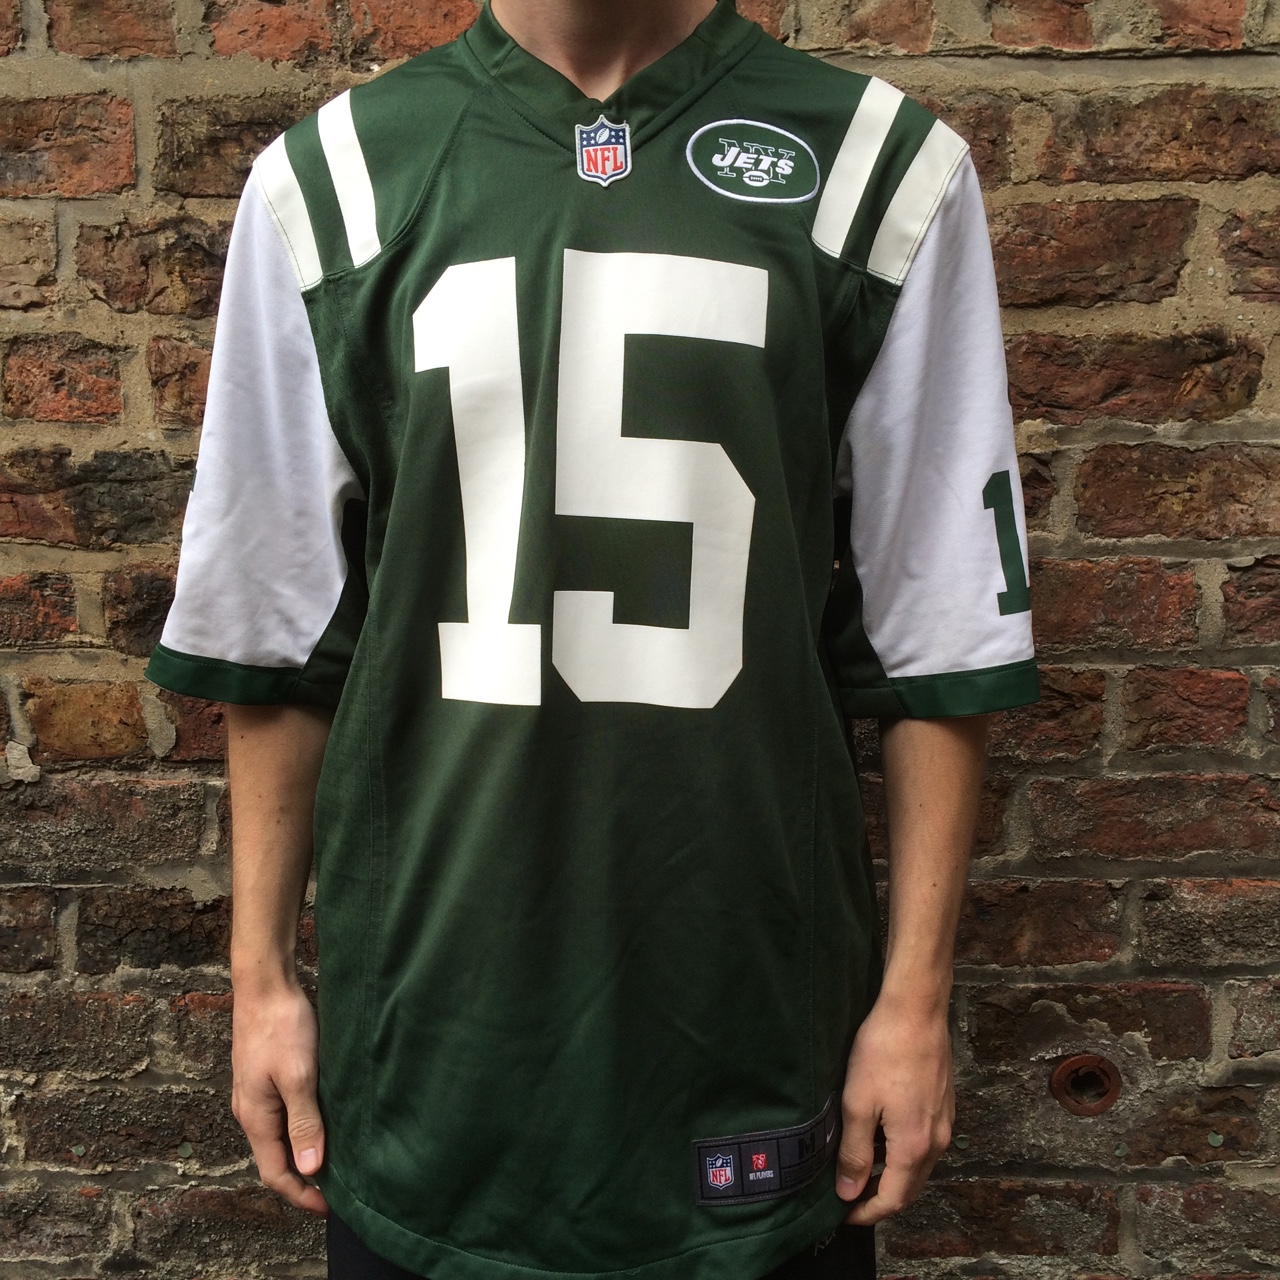 official photos 9c3fb 620d4 New York NY Jets jersey with number 15 Tim Tebow on ...